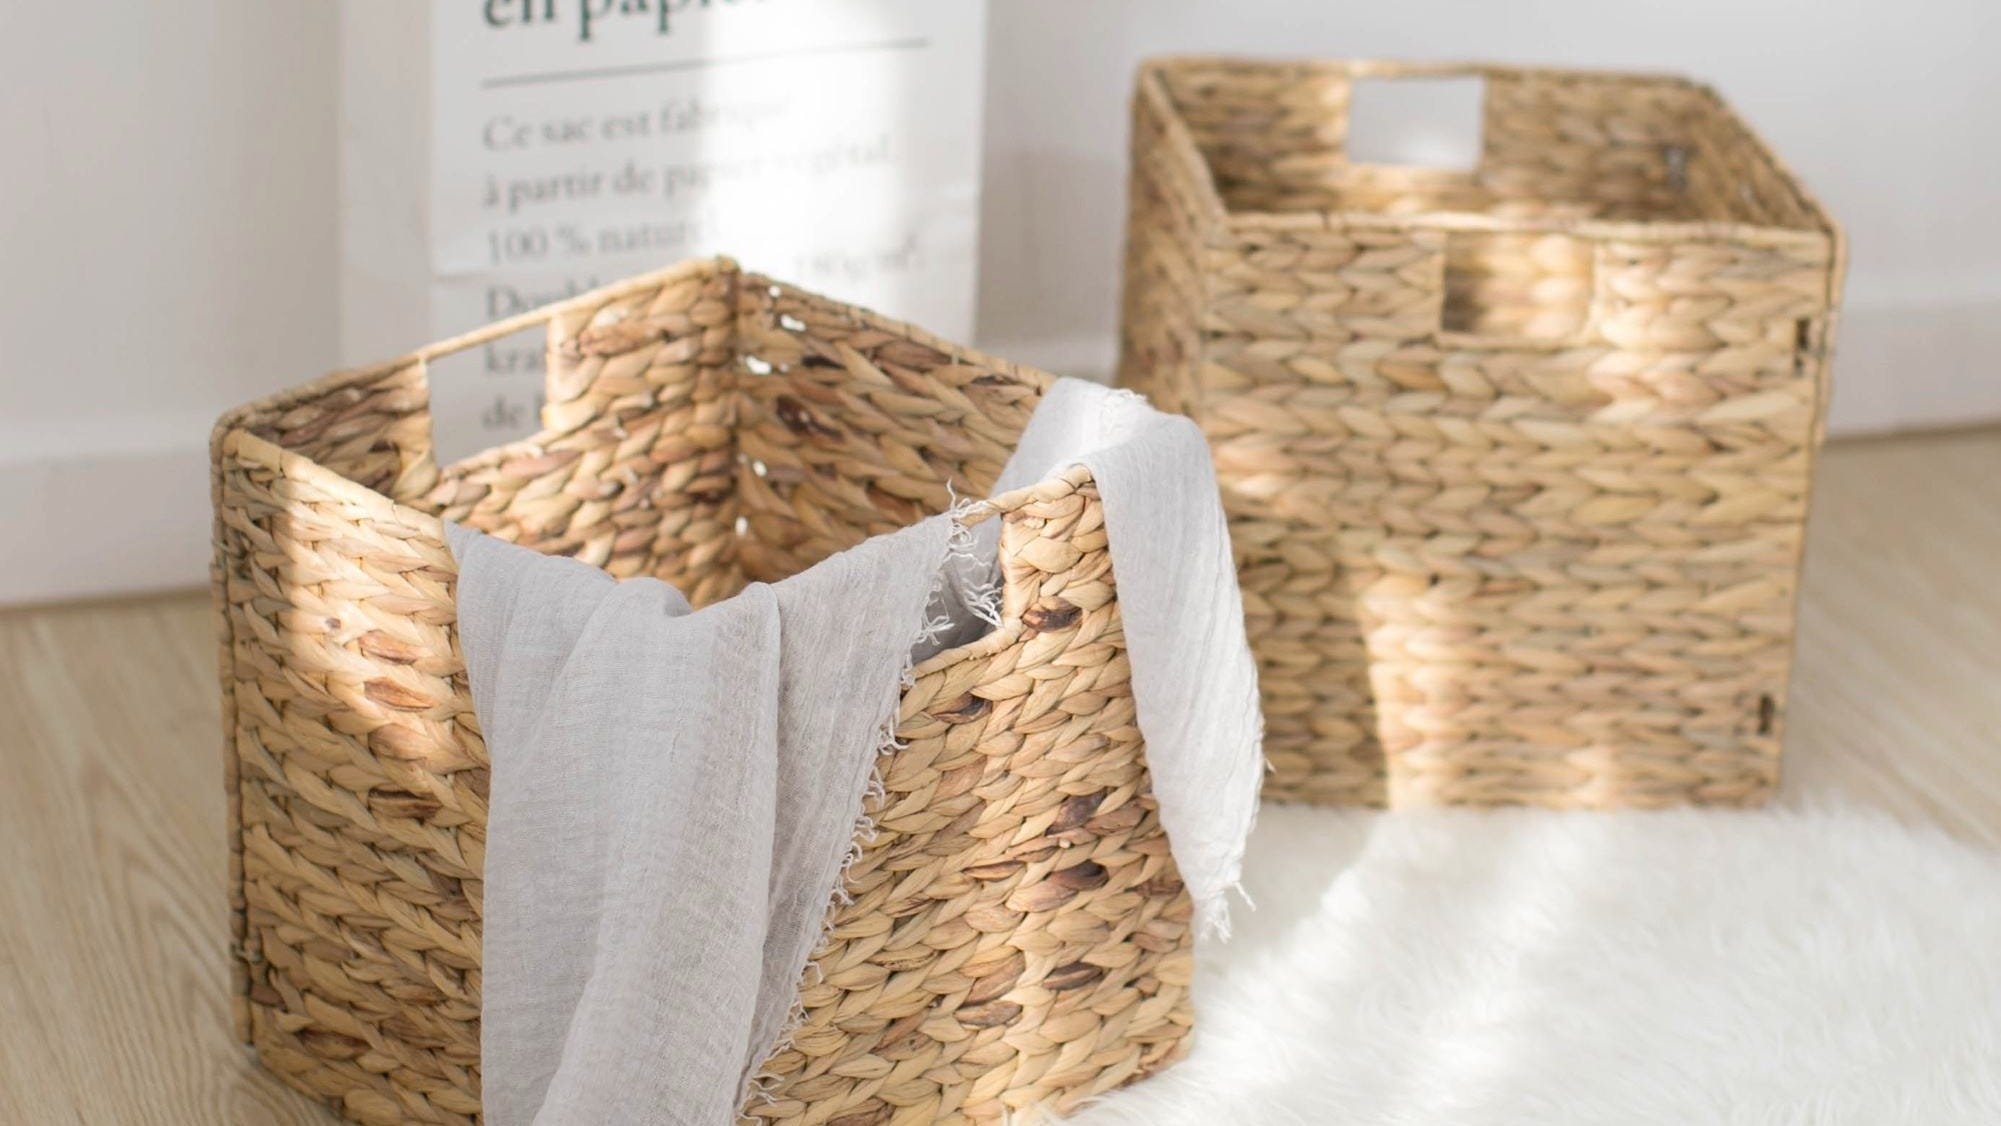 Two wicker storage baskets, one empty and one holding a blanket.